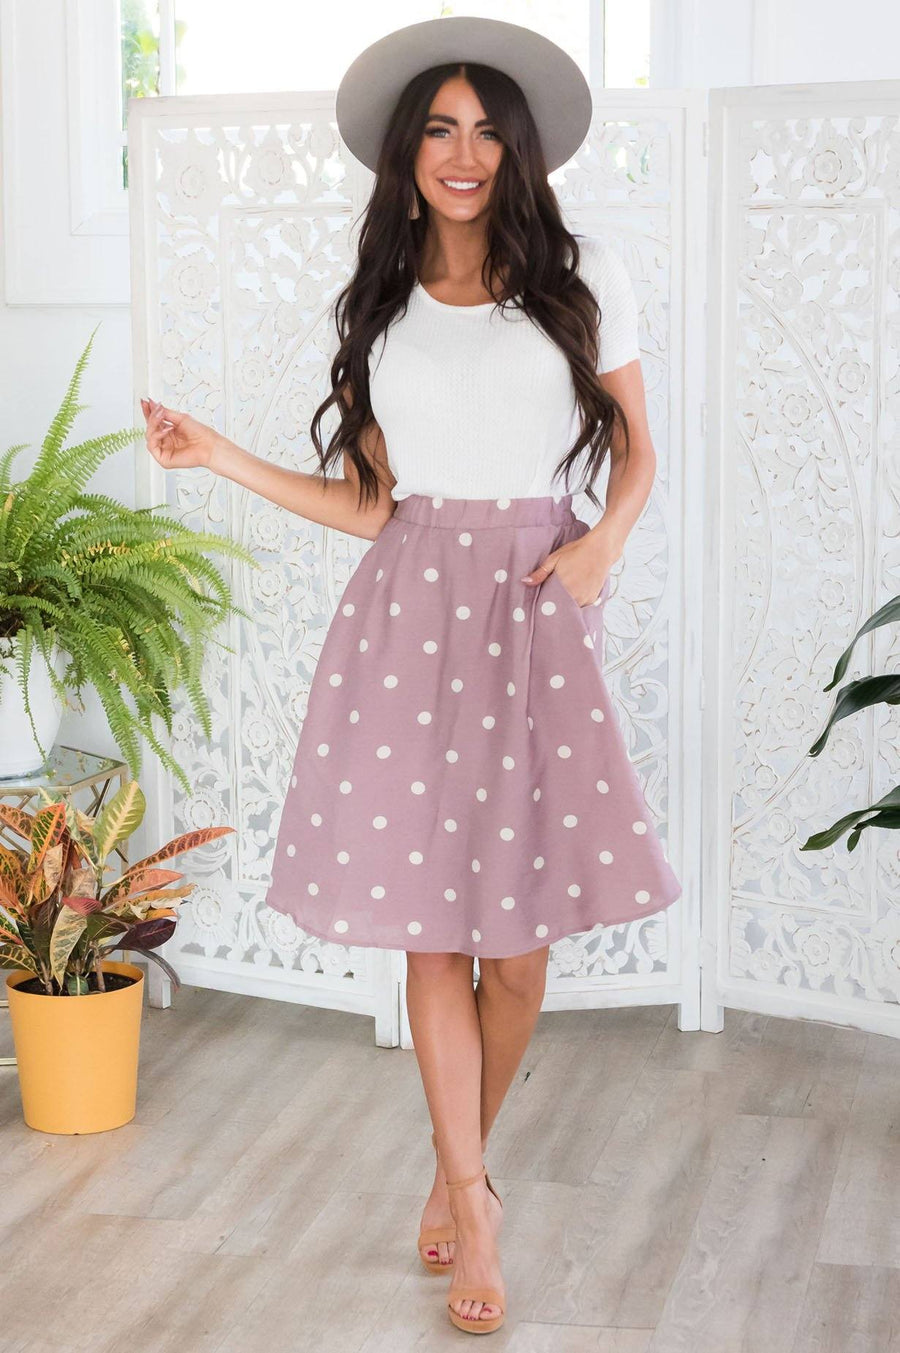 Classic Polka Dots Modest Skirt